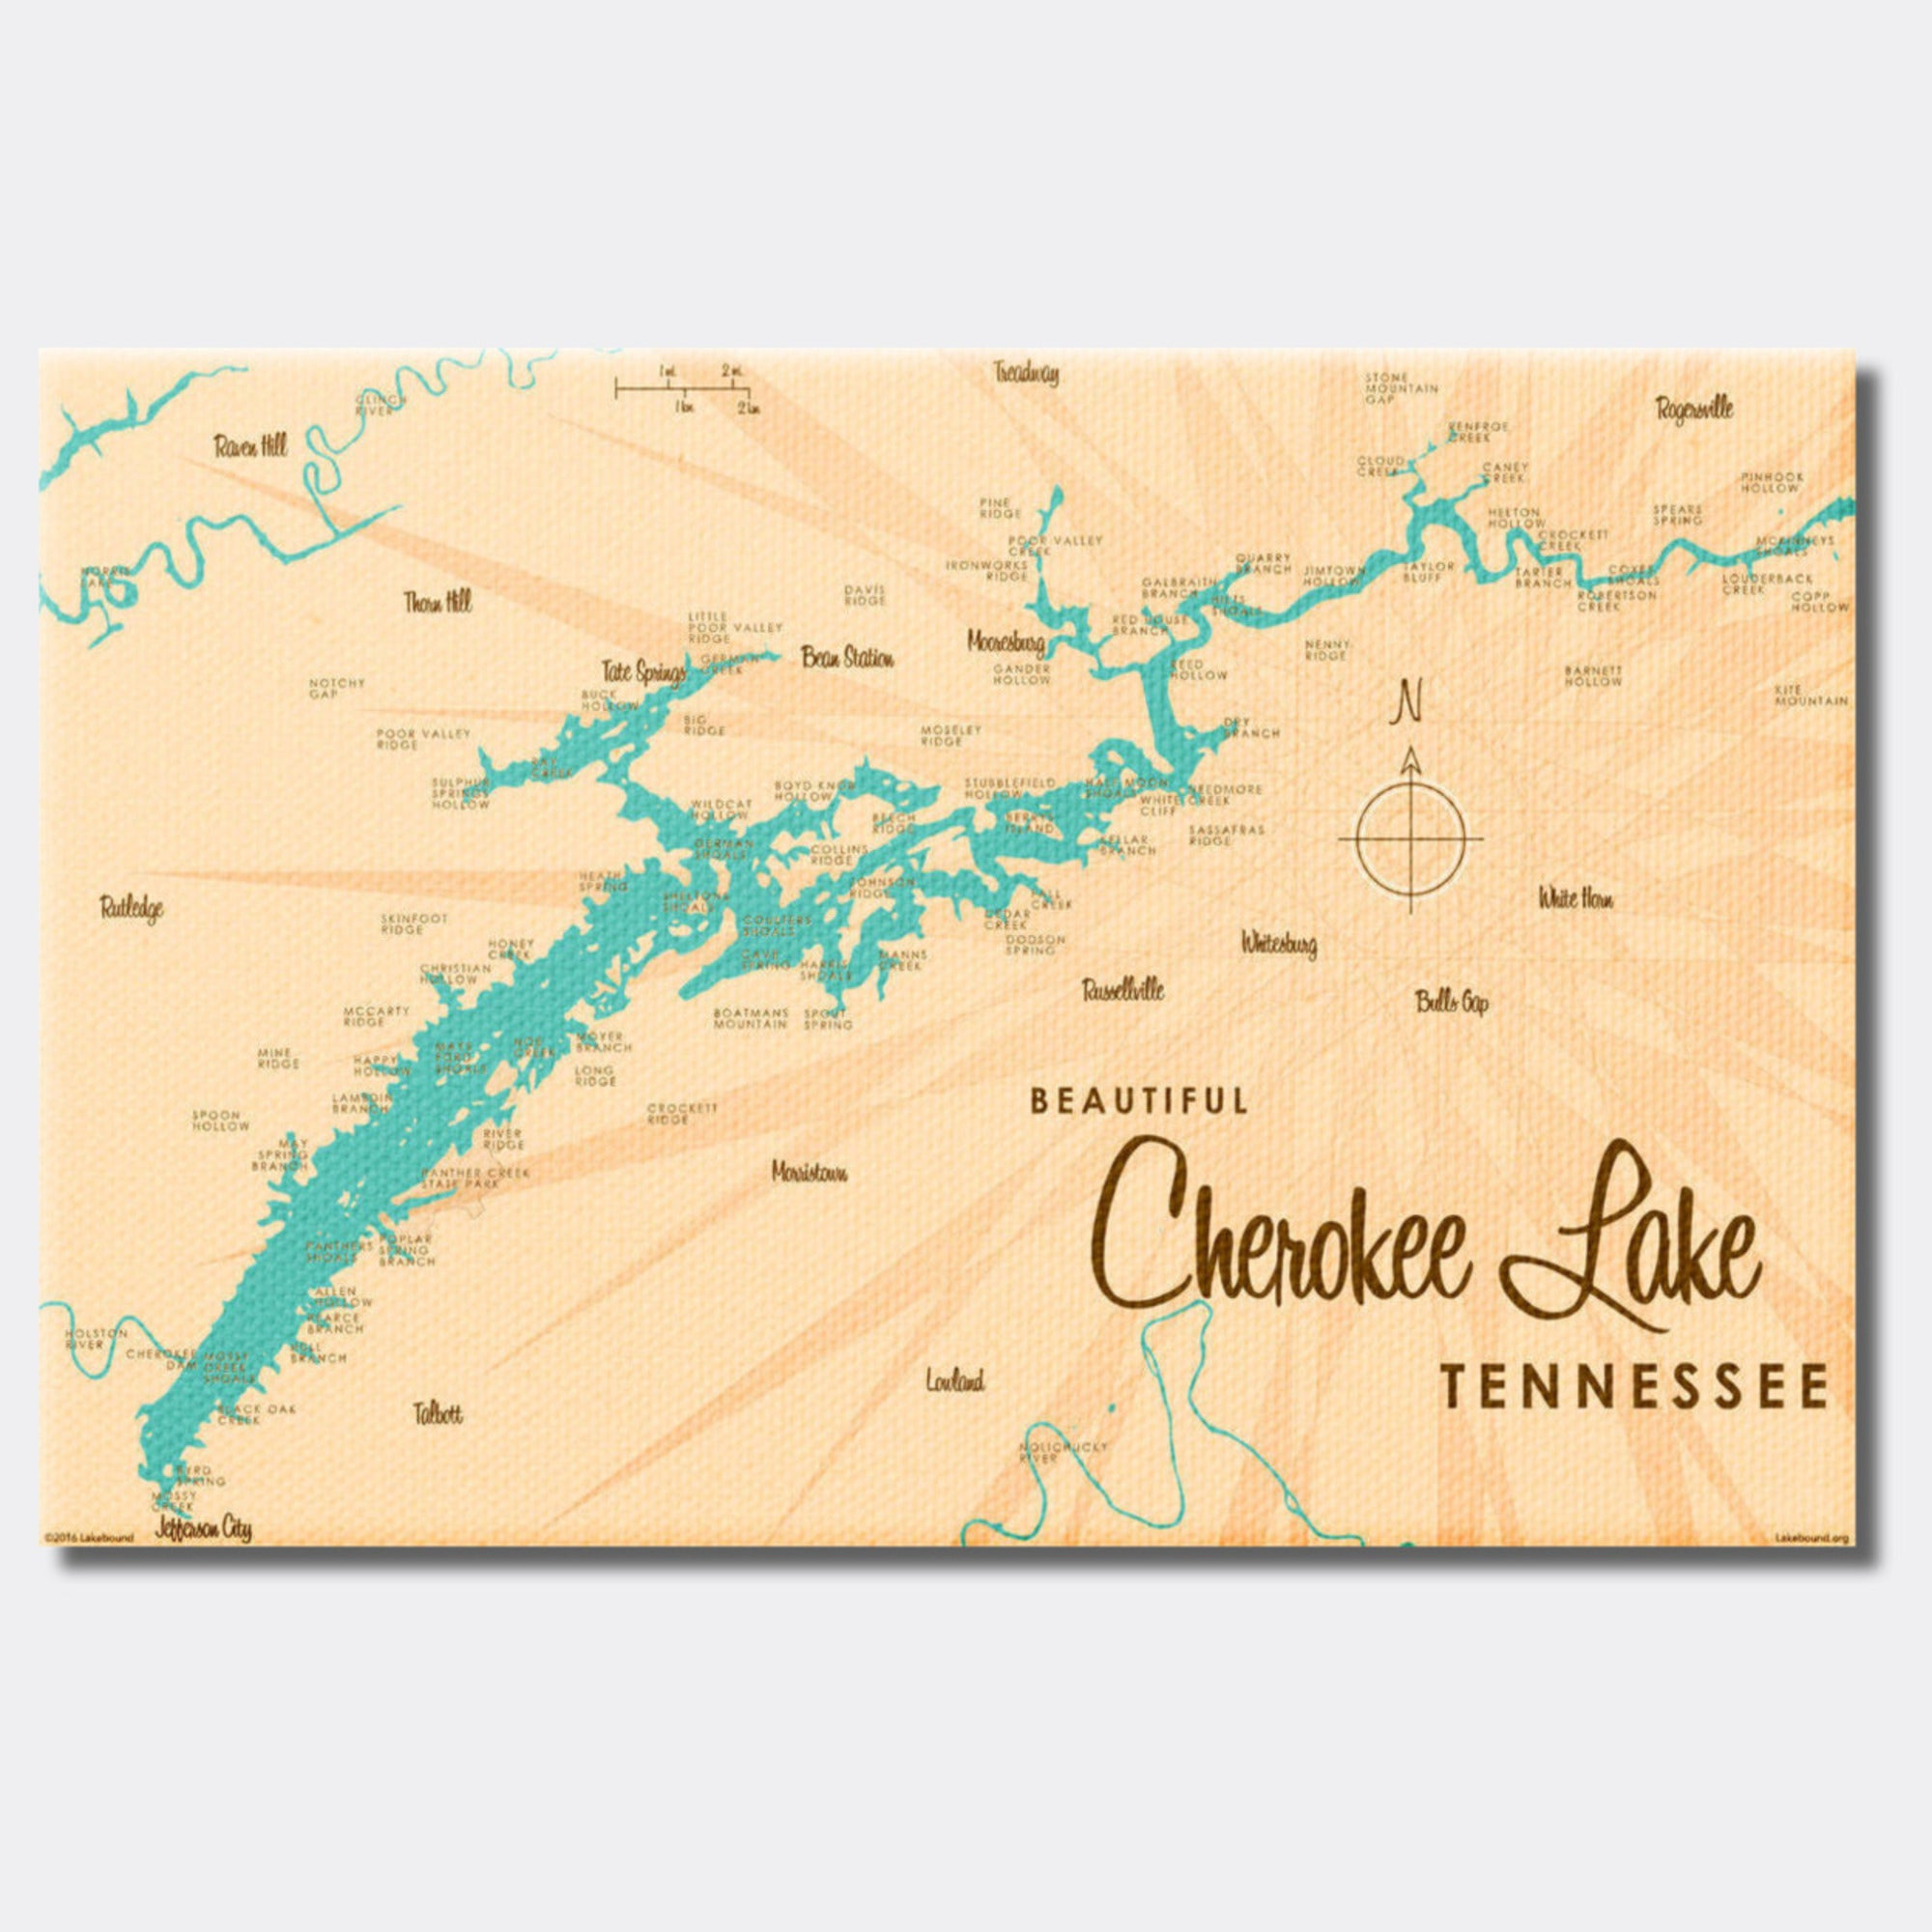 Cherokee Lake Tennessee, Canvas Print